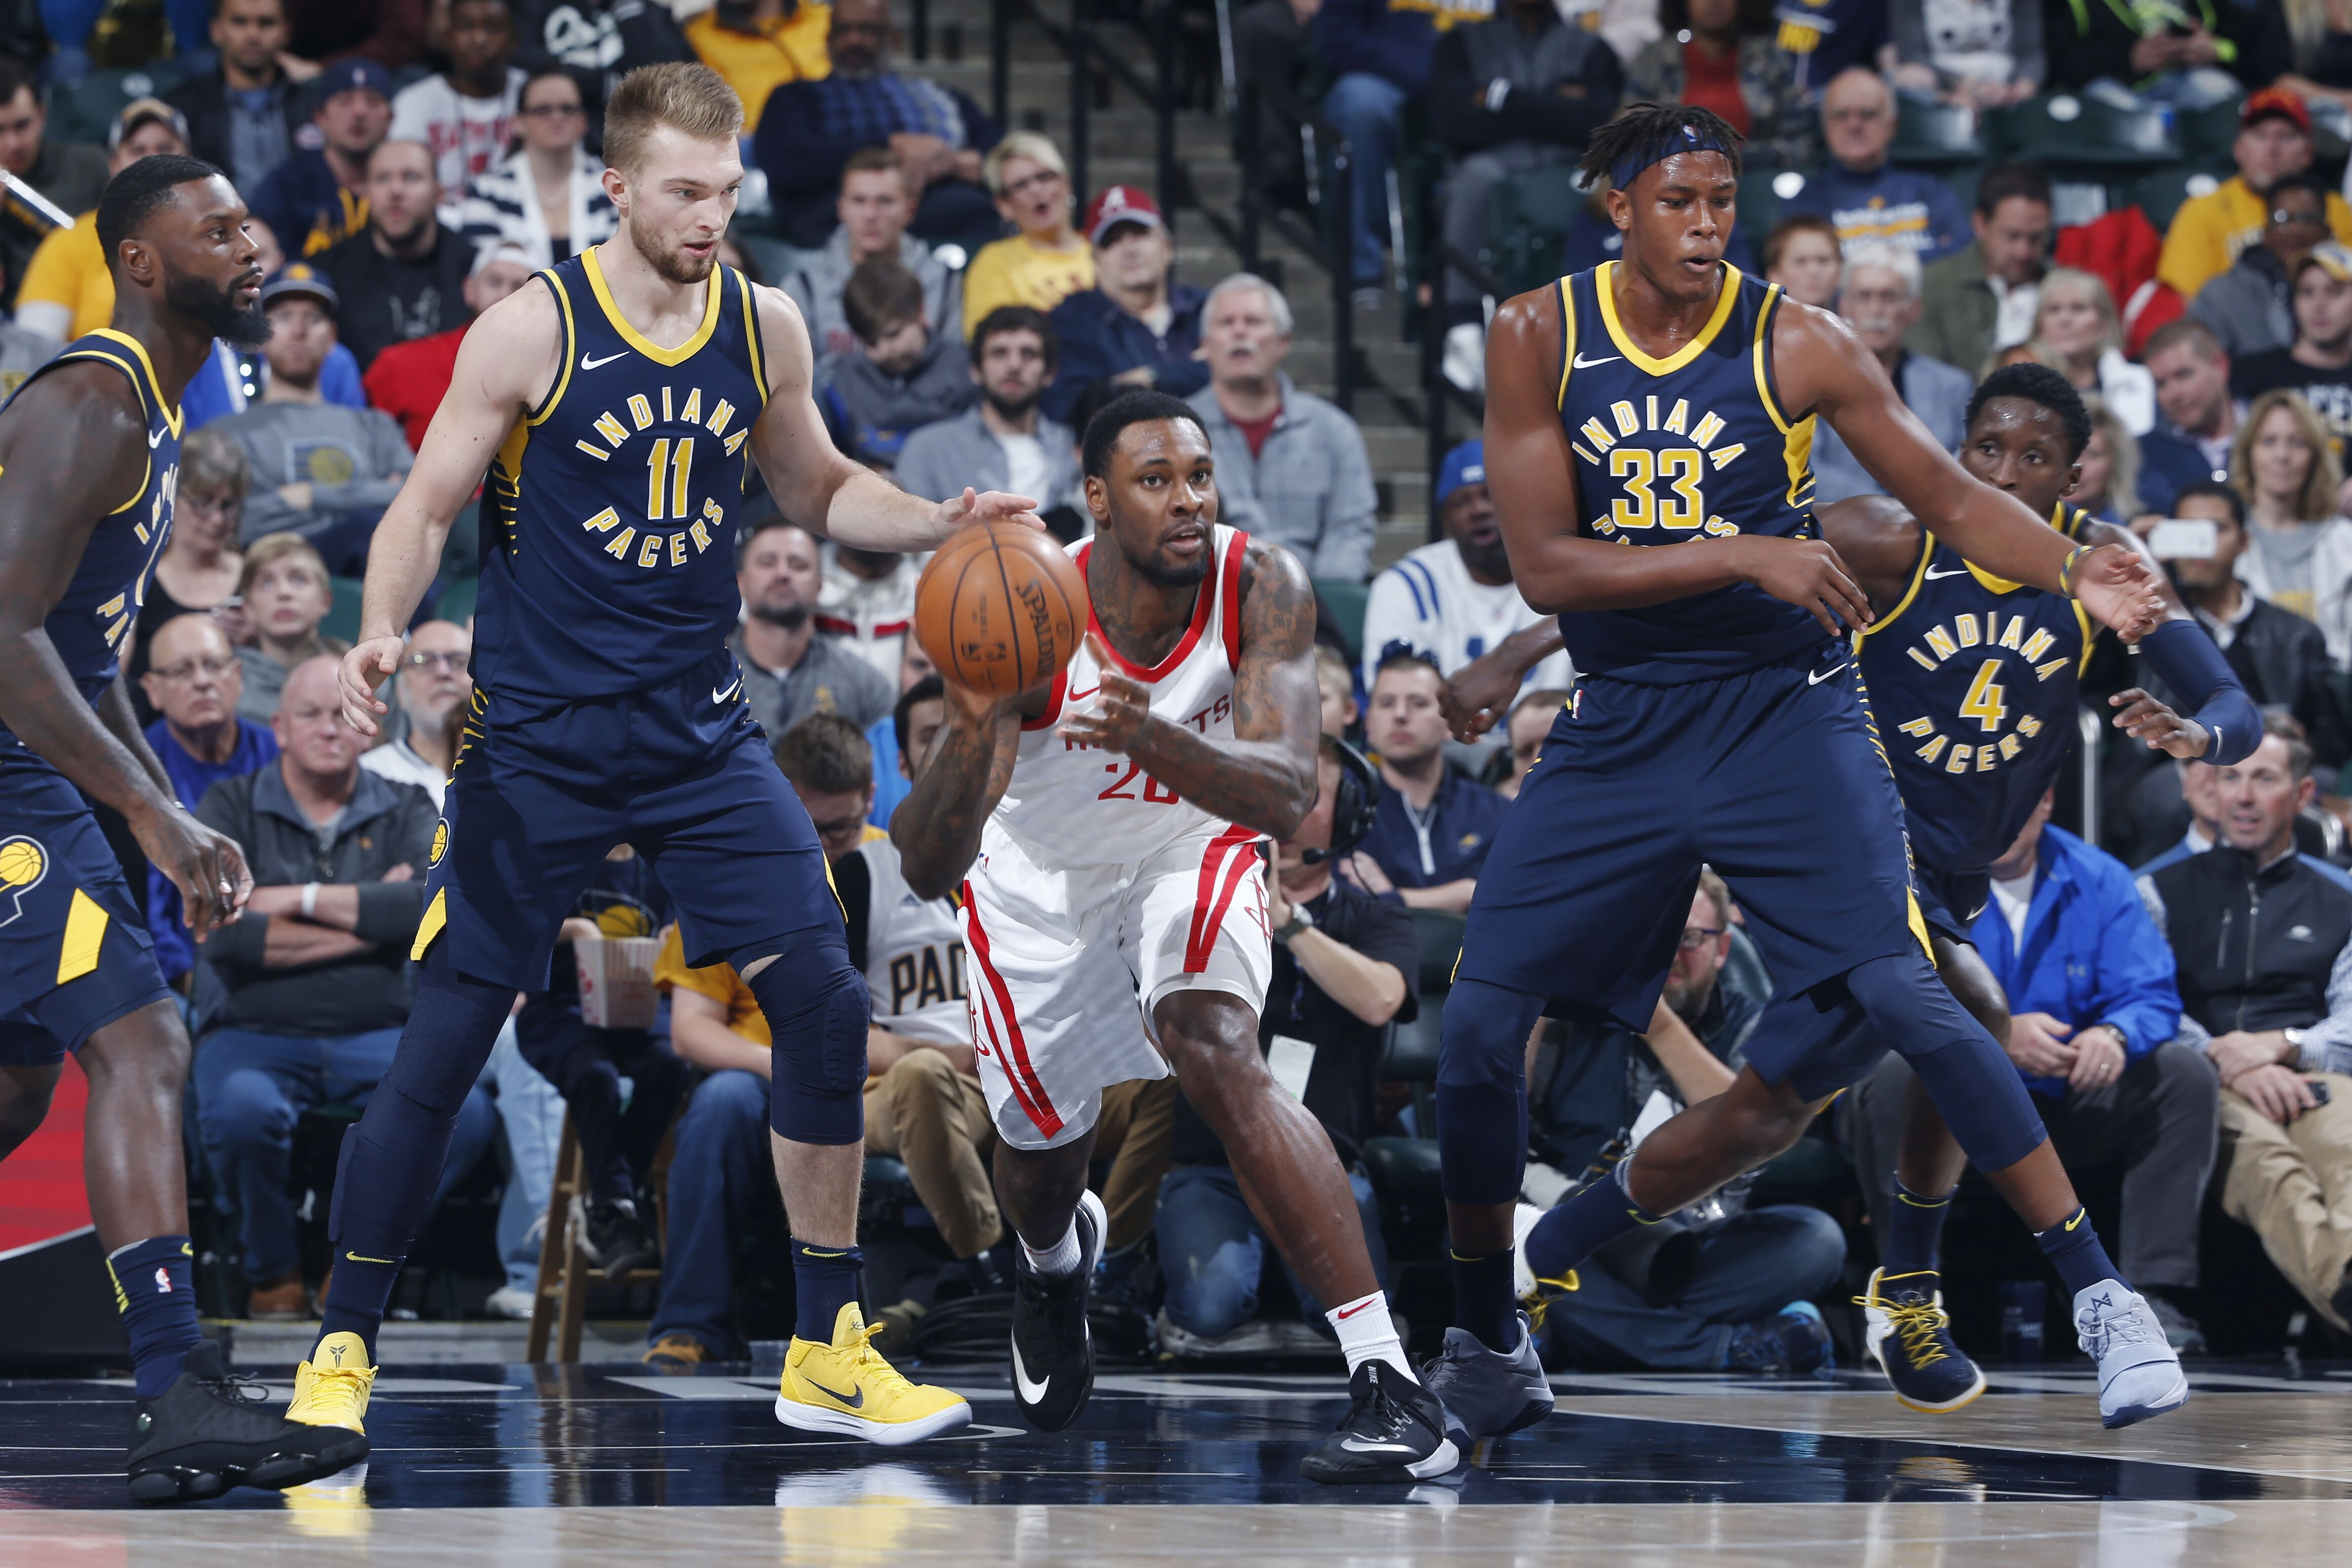 873814306-houston-rockets-v-indiana-pacers.jpg